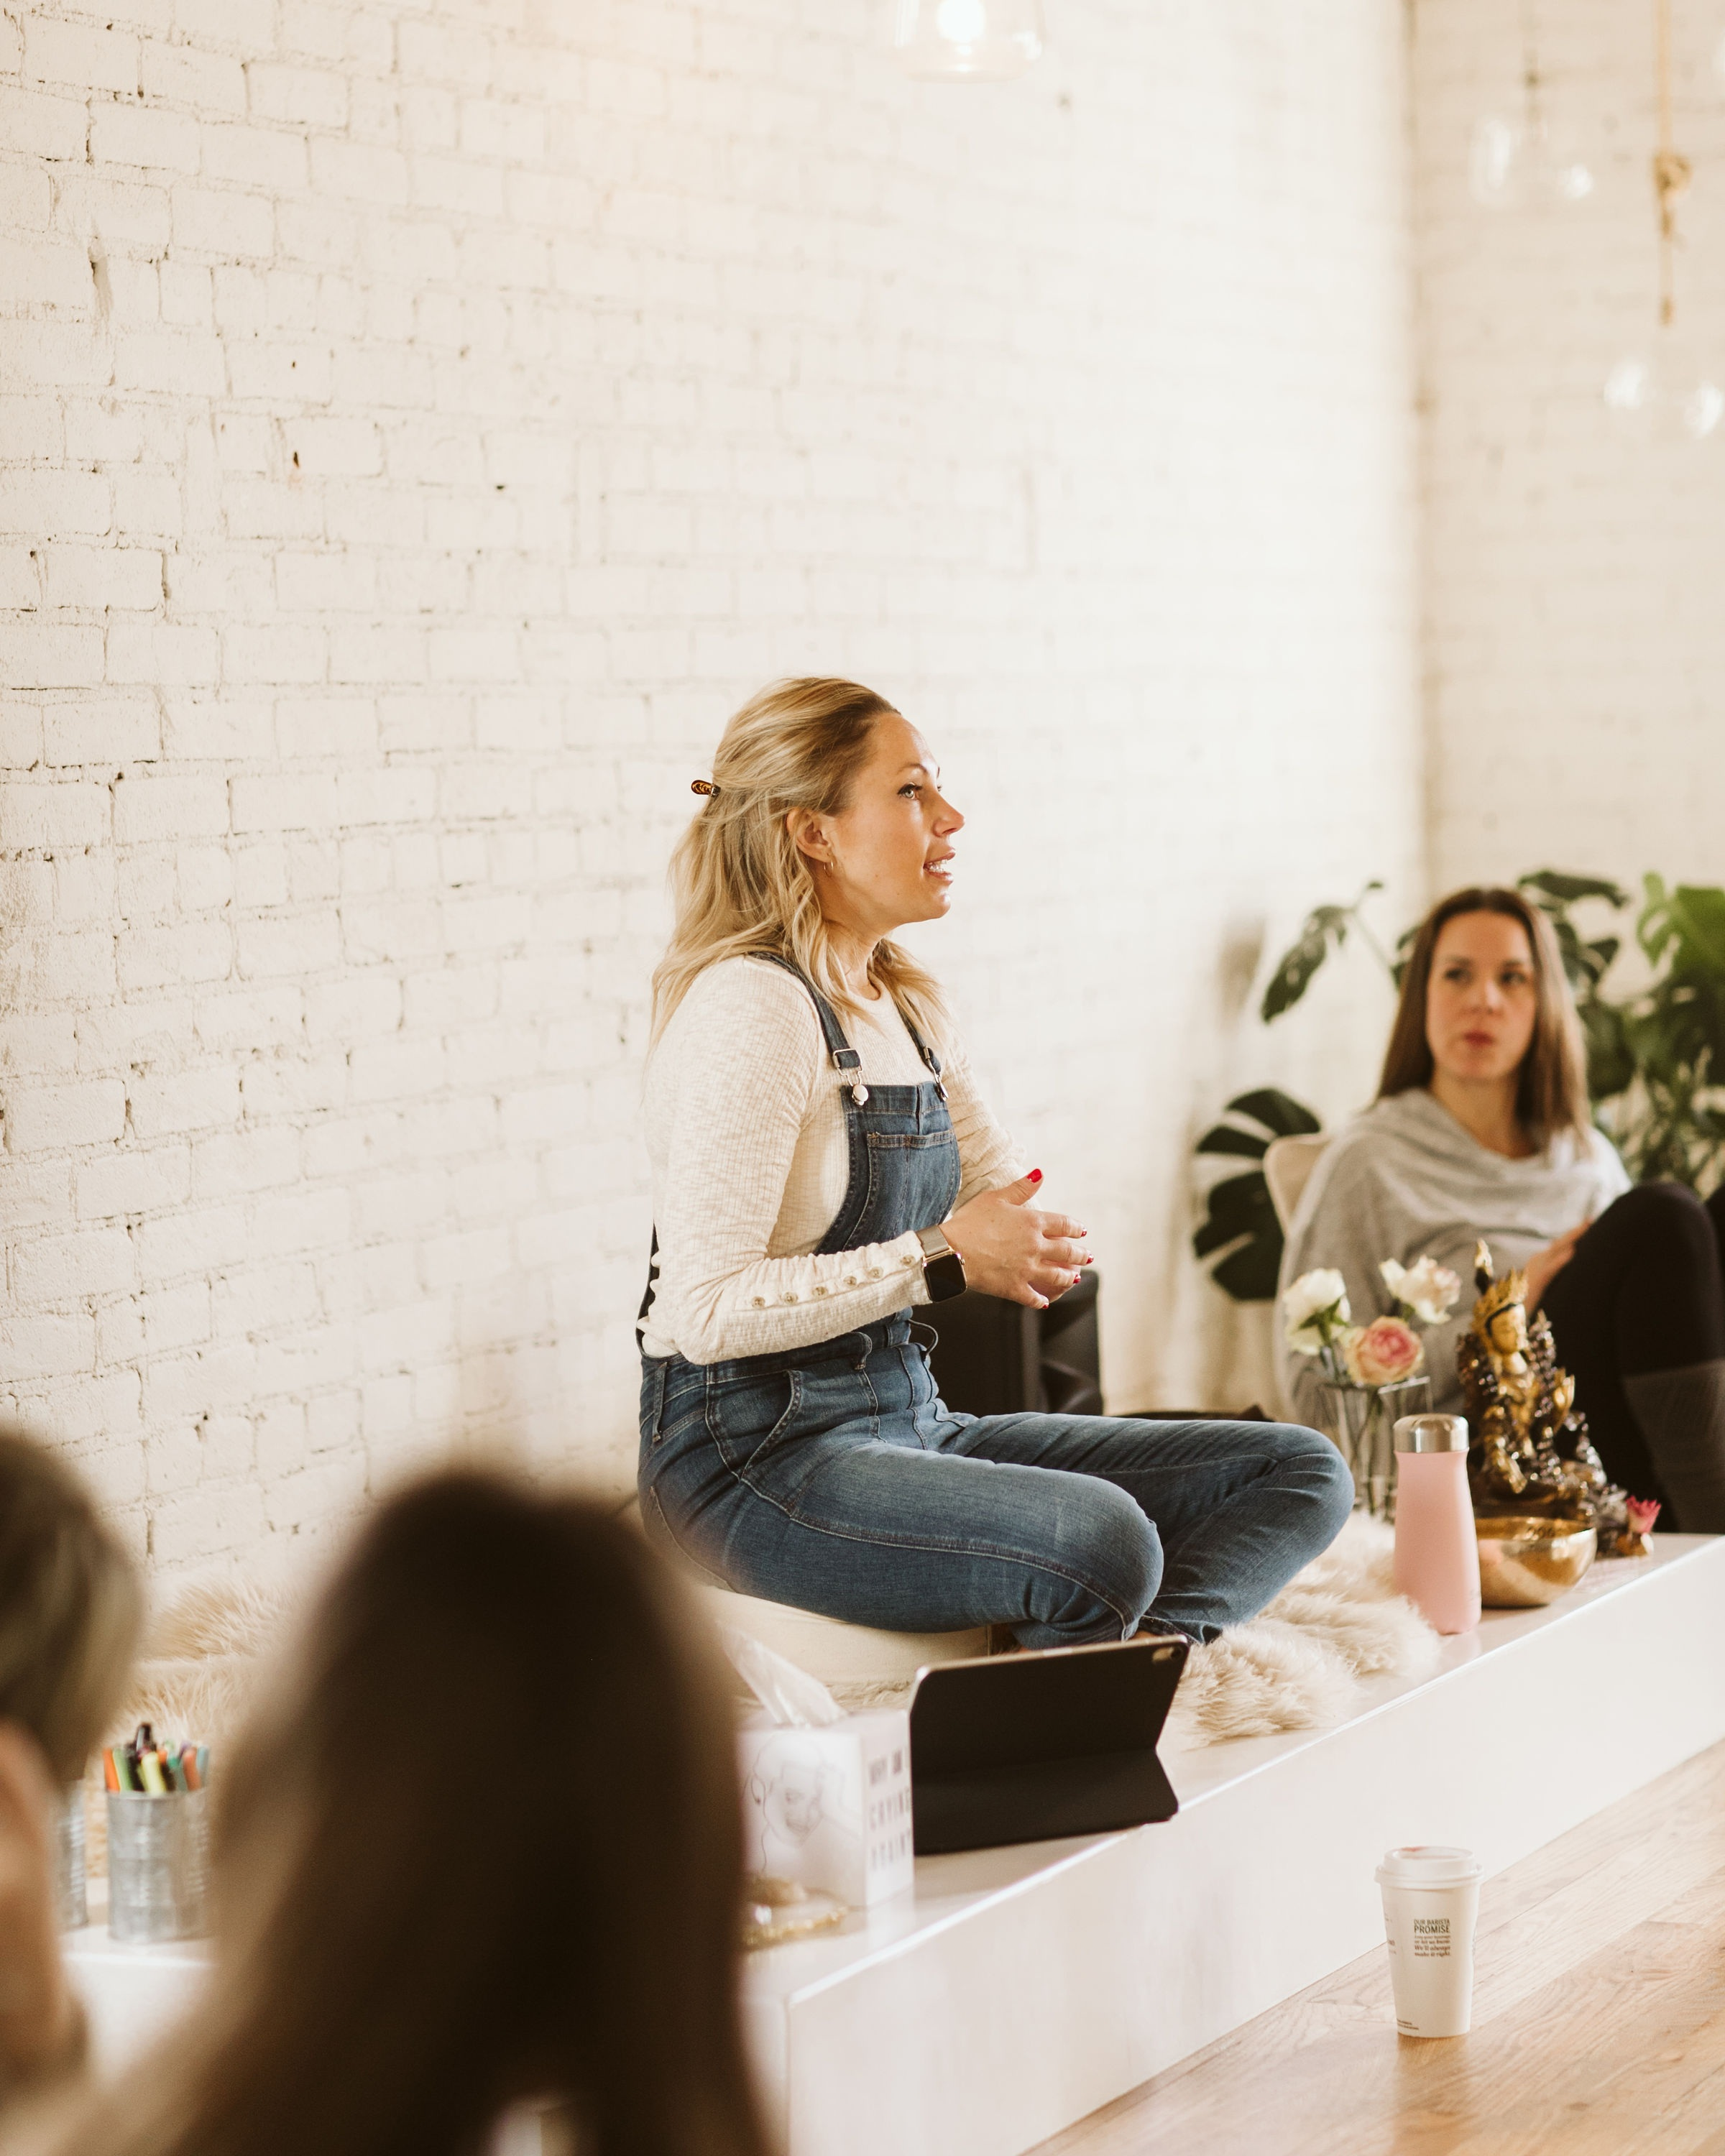 Step into self-acceptance - This 3-part course is designed to help women identify, navigate and change the narrative identity we've come to believe about our lives.Take a deep-dive look into your past to identify the root of hurt, insecurities and self-limiting behaviors. Learn how to change the plot and your mindset.Discover and believe that you are deserving and worthy of feeling seen.